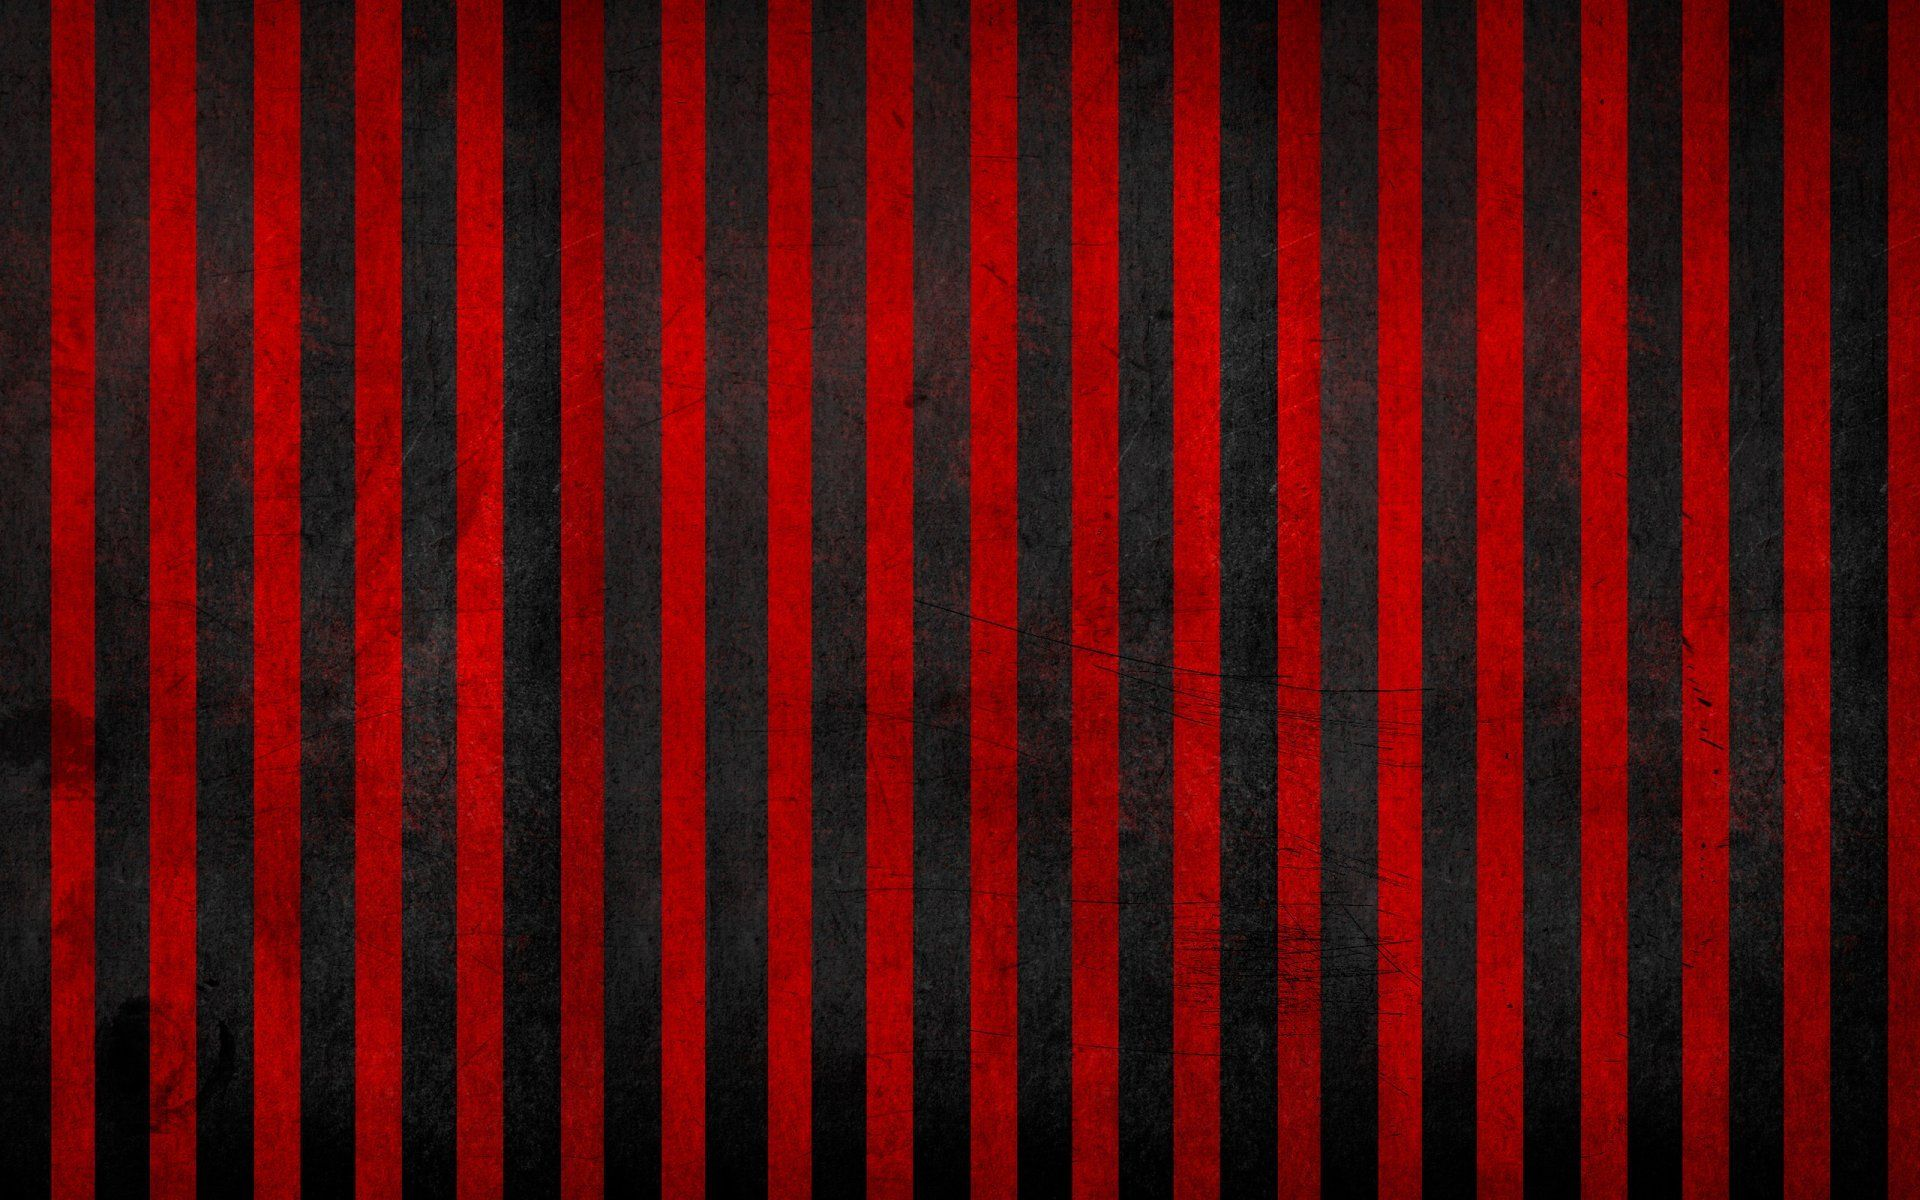 Iphone Wallpaper Red Black Line Pattern Parallel